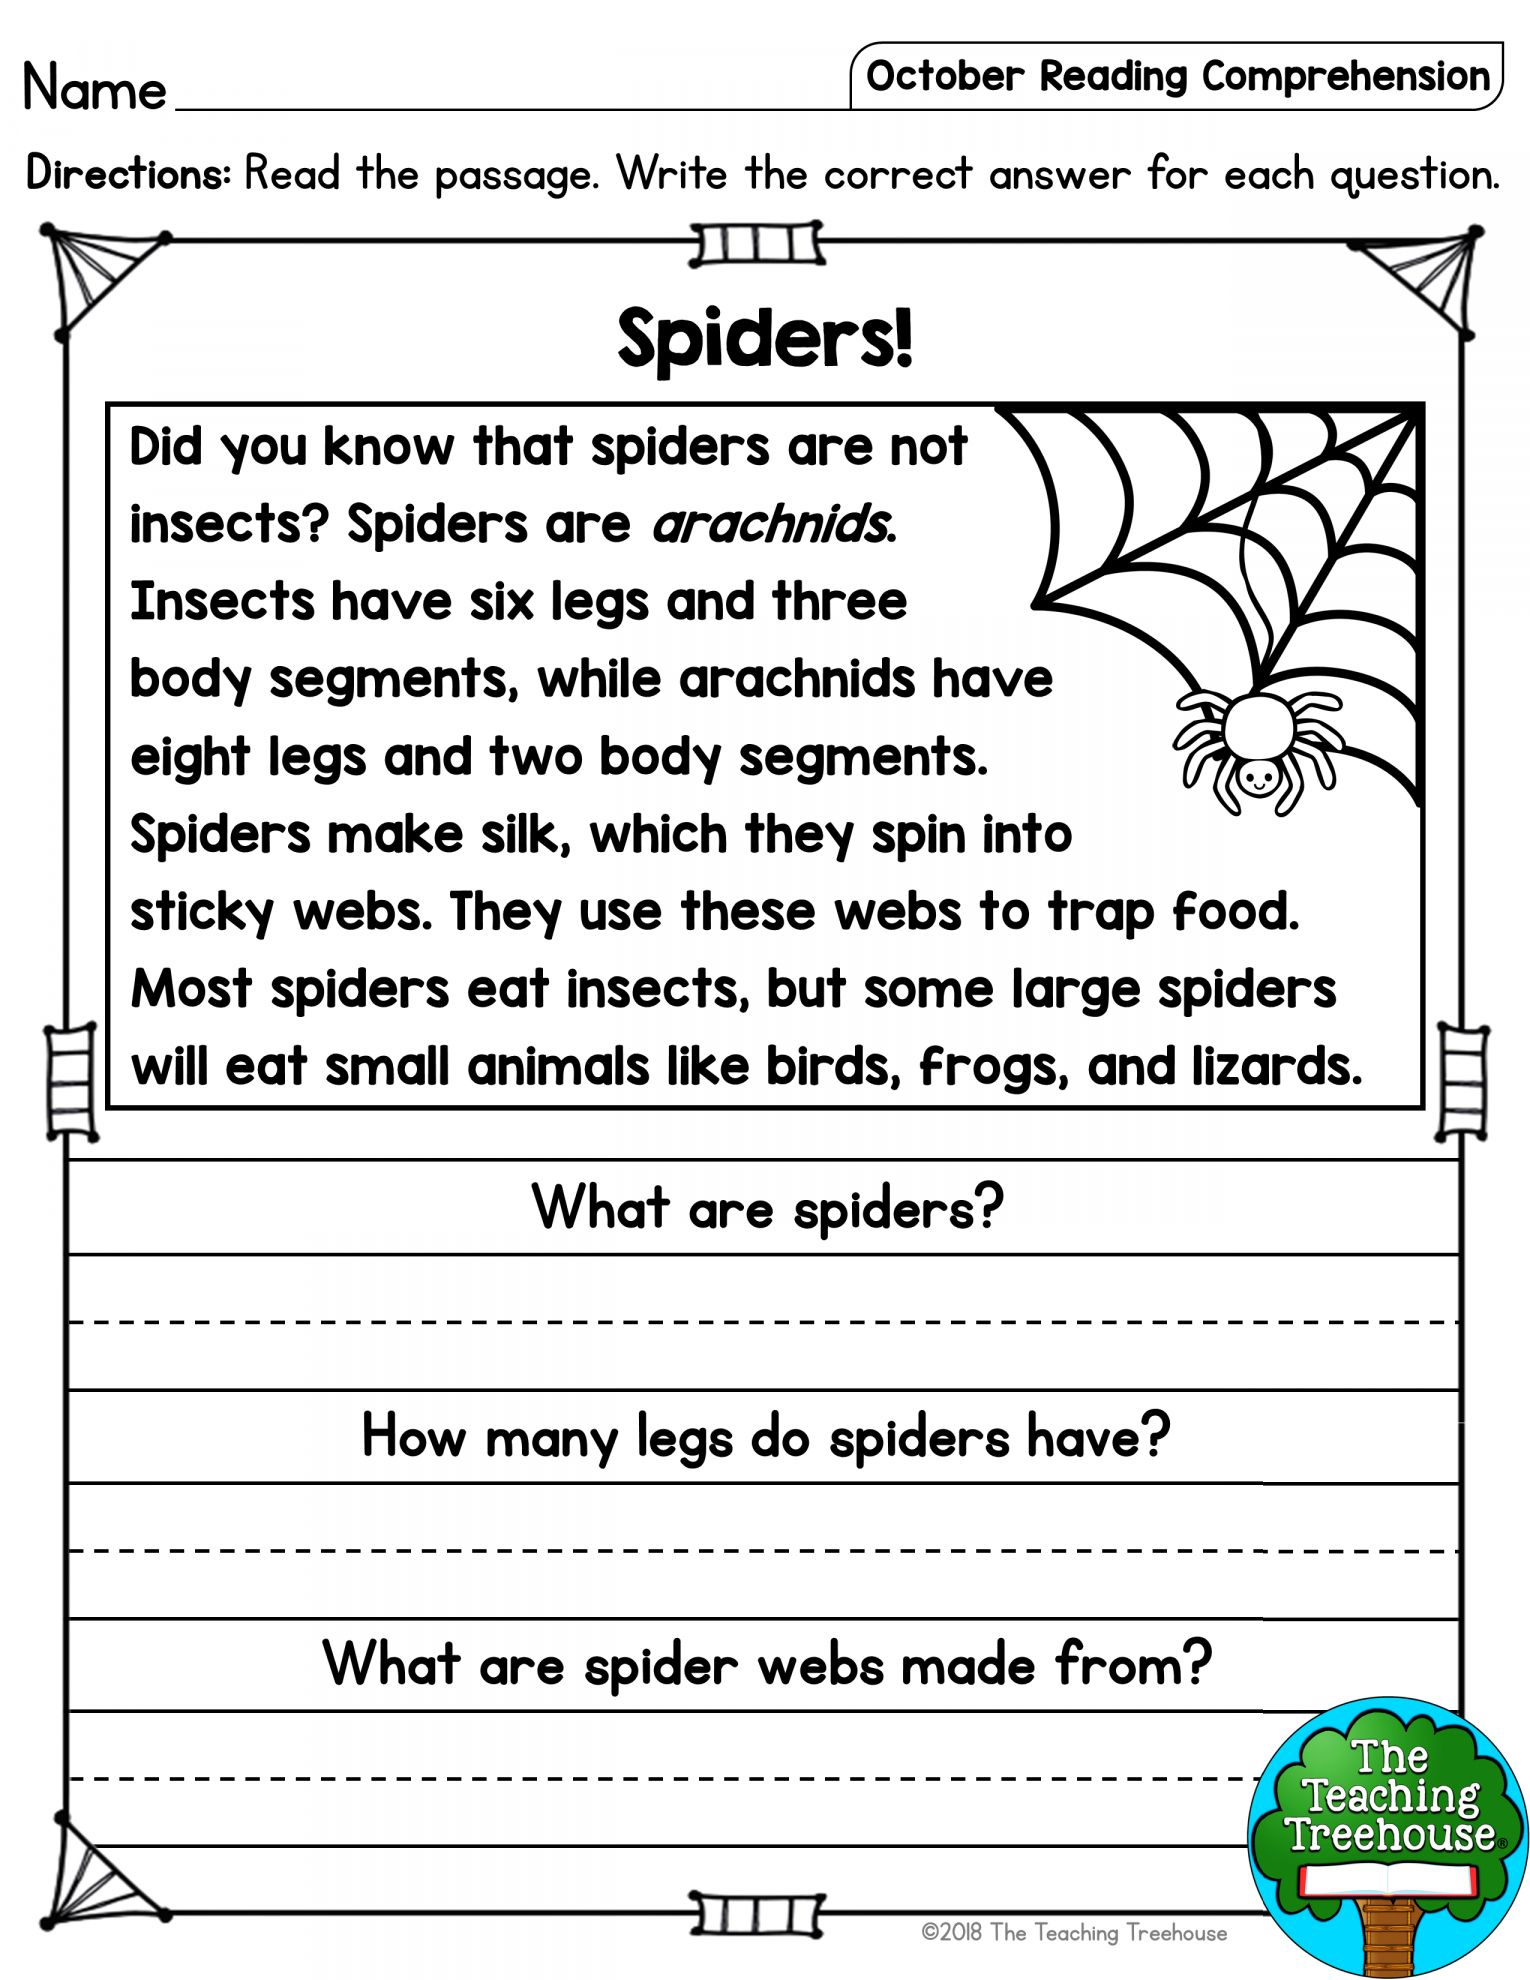 9 Spider Reading Comprehension Worksheet